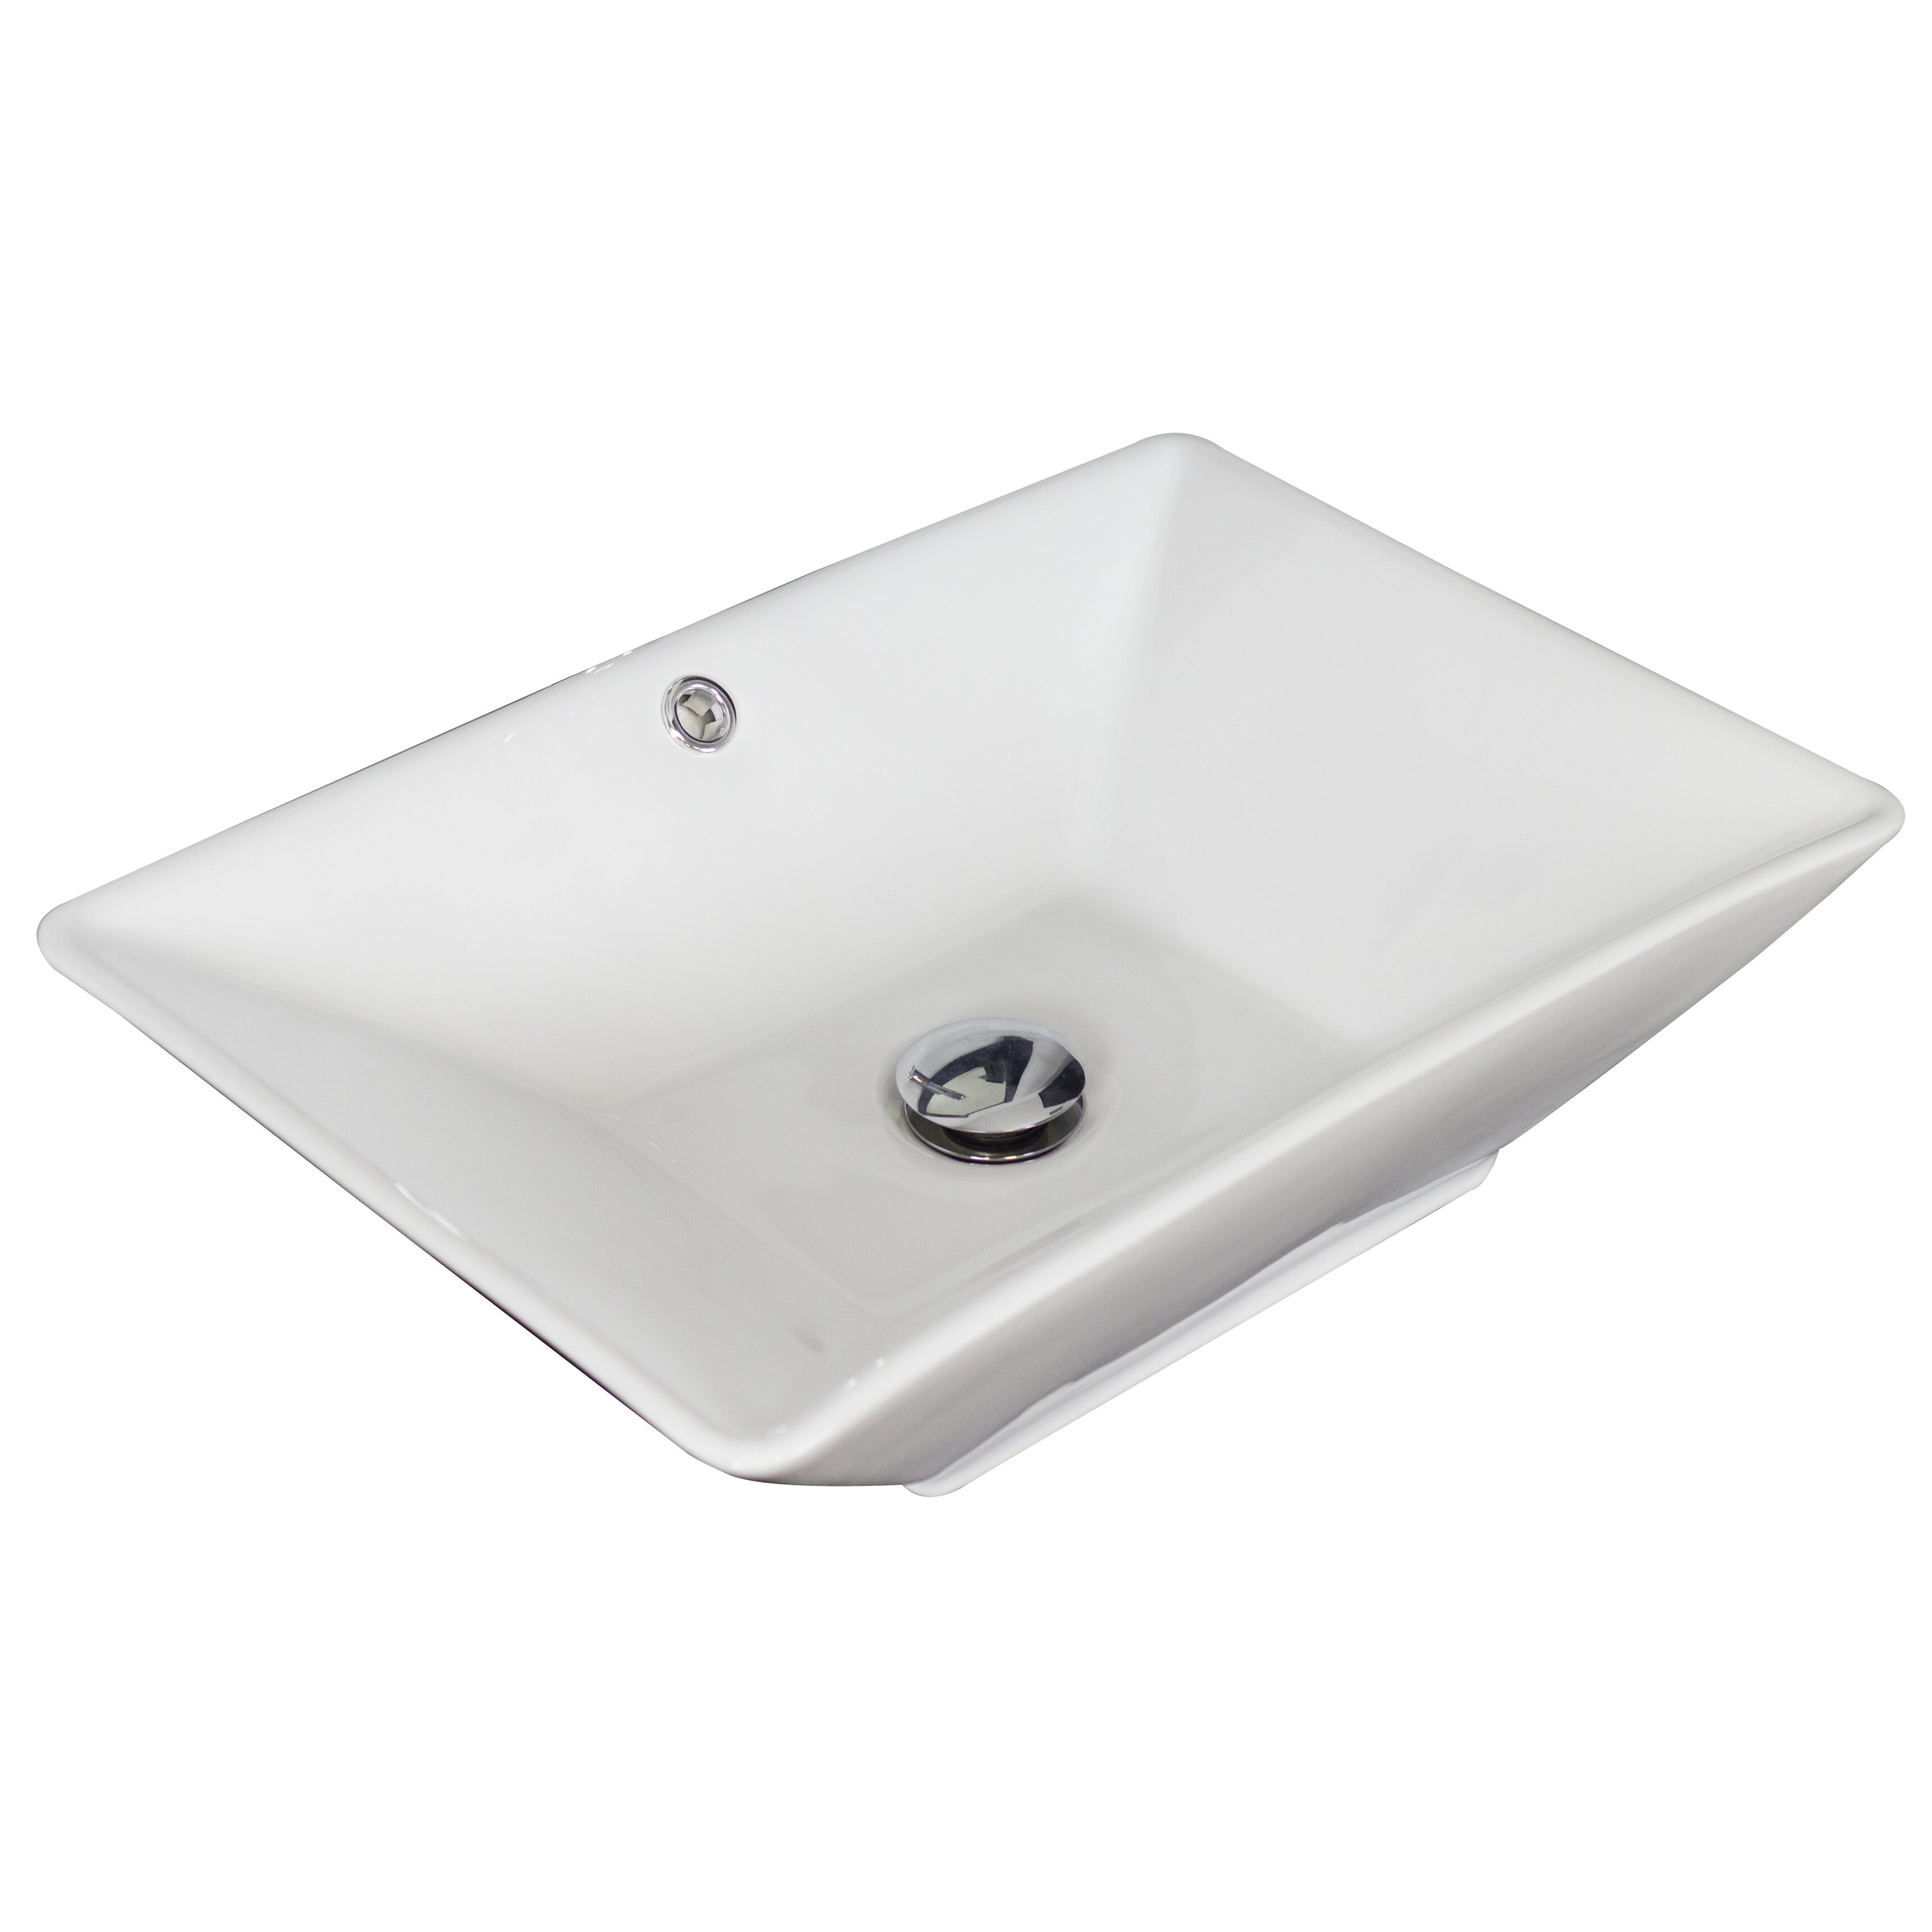 Rectangular Bathroom Sinks American Imaginations Above Counter Rectangular Vessel Bathroom